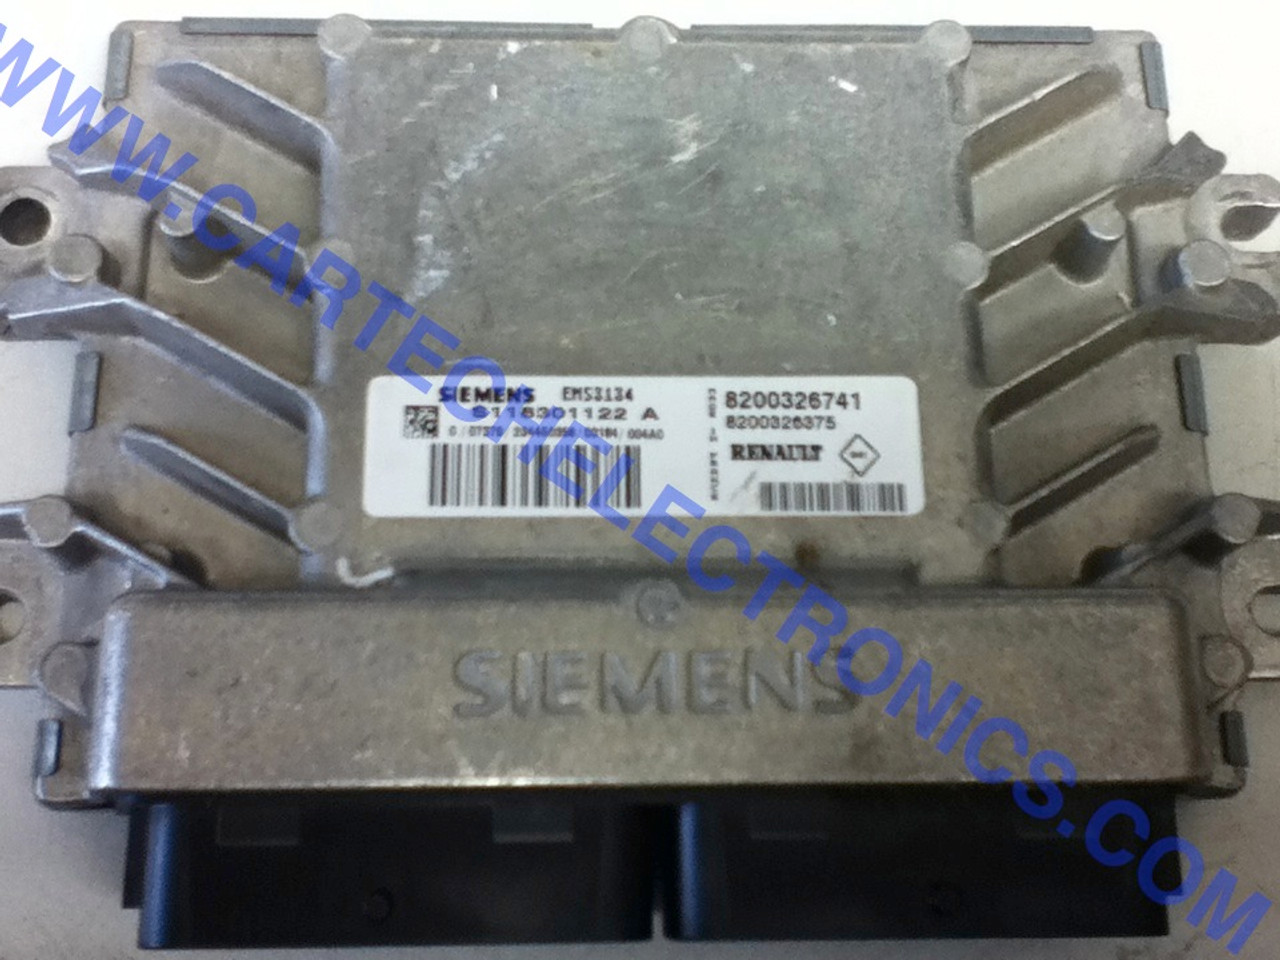 Renault Clio 2.0 RS  S118301122 A  8200326375  8200326741  EMS3134